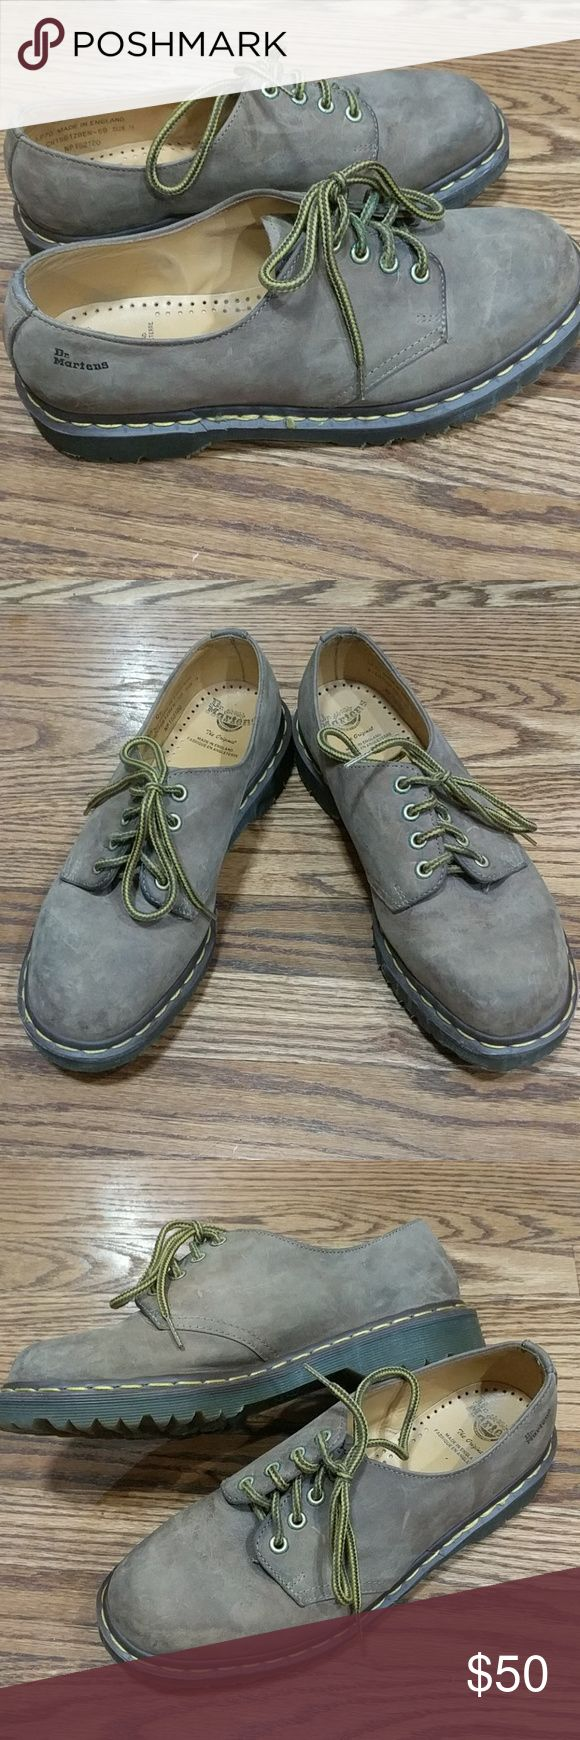 Dr Martens Mens shoes size 9 Dr Martens men's brown loafers. Please review all pics.  🌟Smoke free home 🌟No trades Dr. Martens Shoes Loafers & Slip-Ons